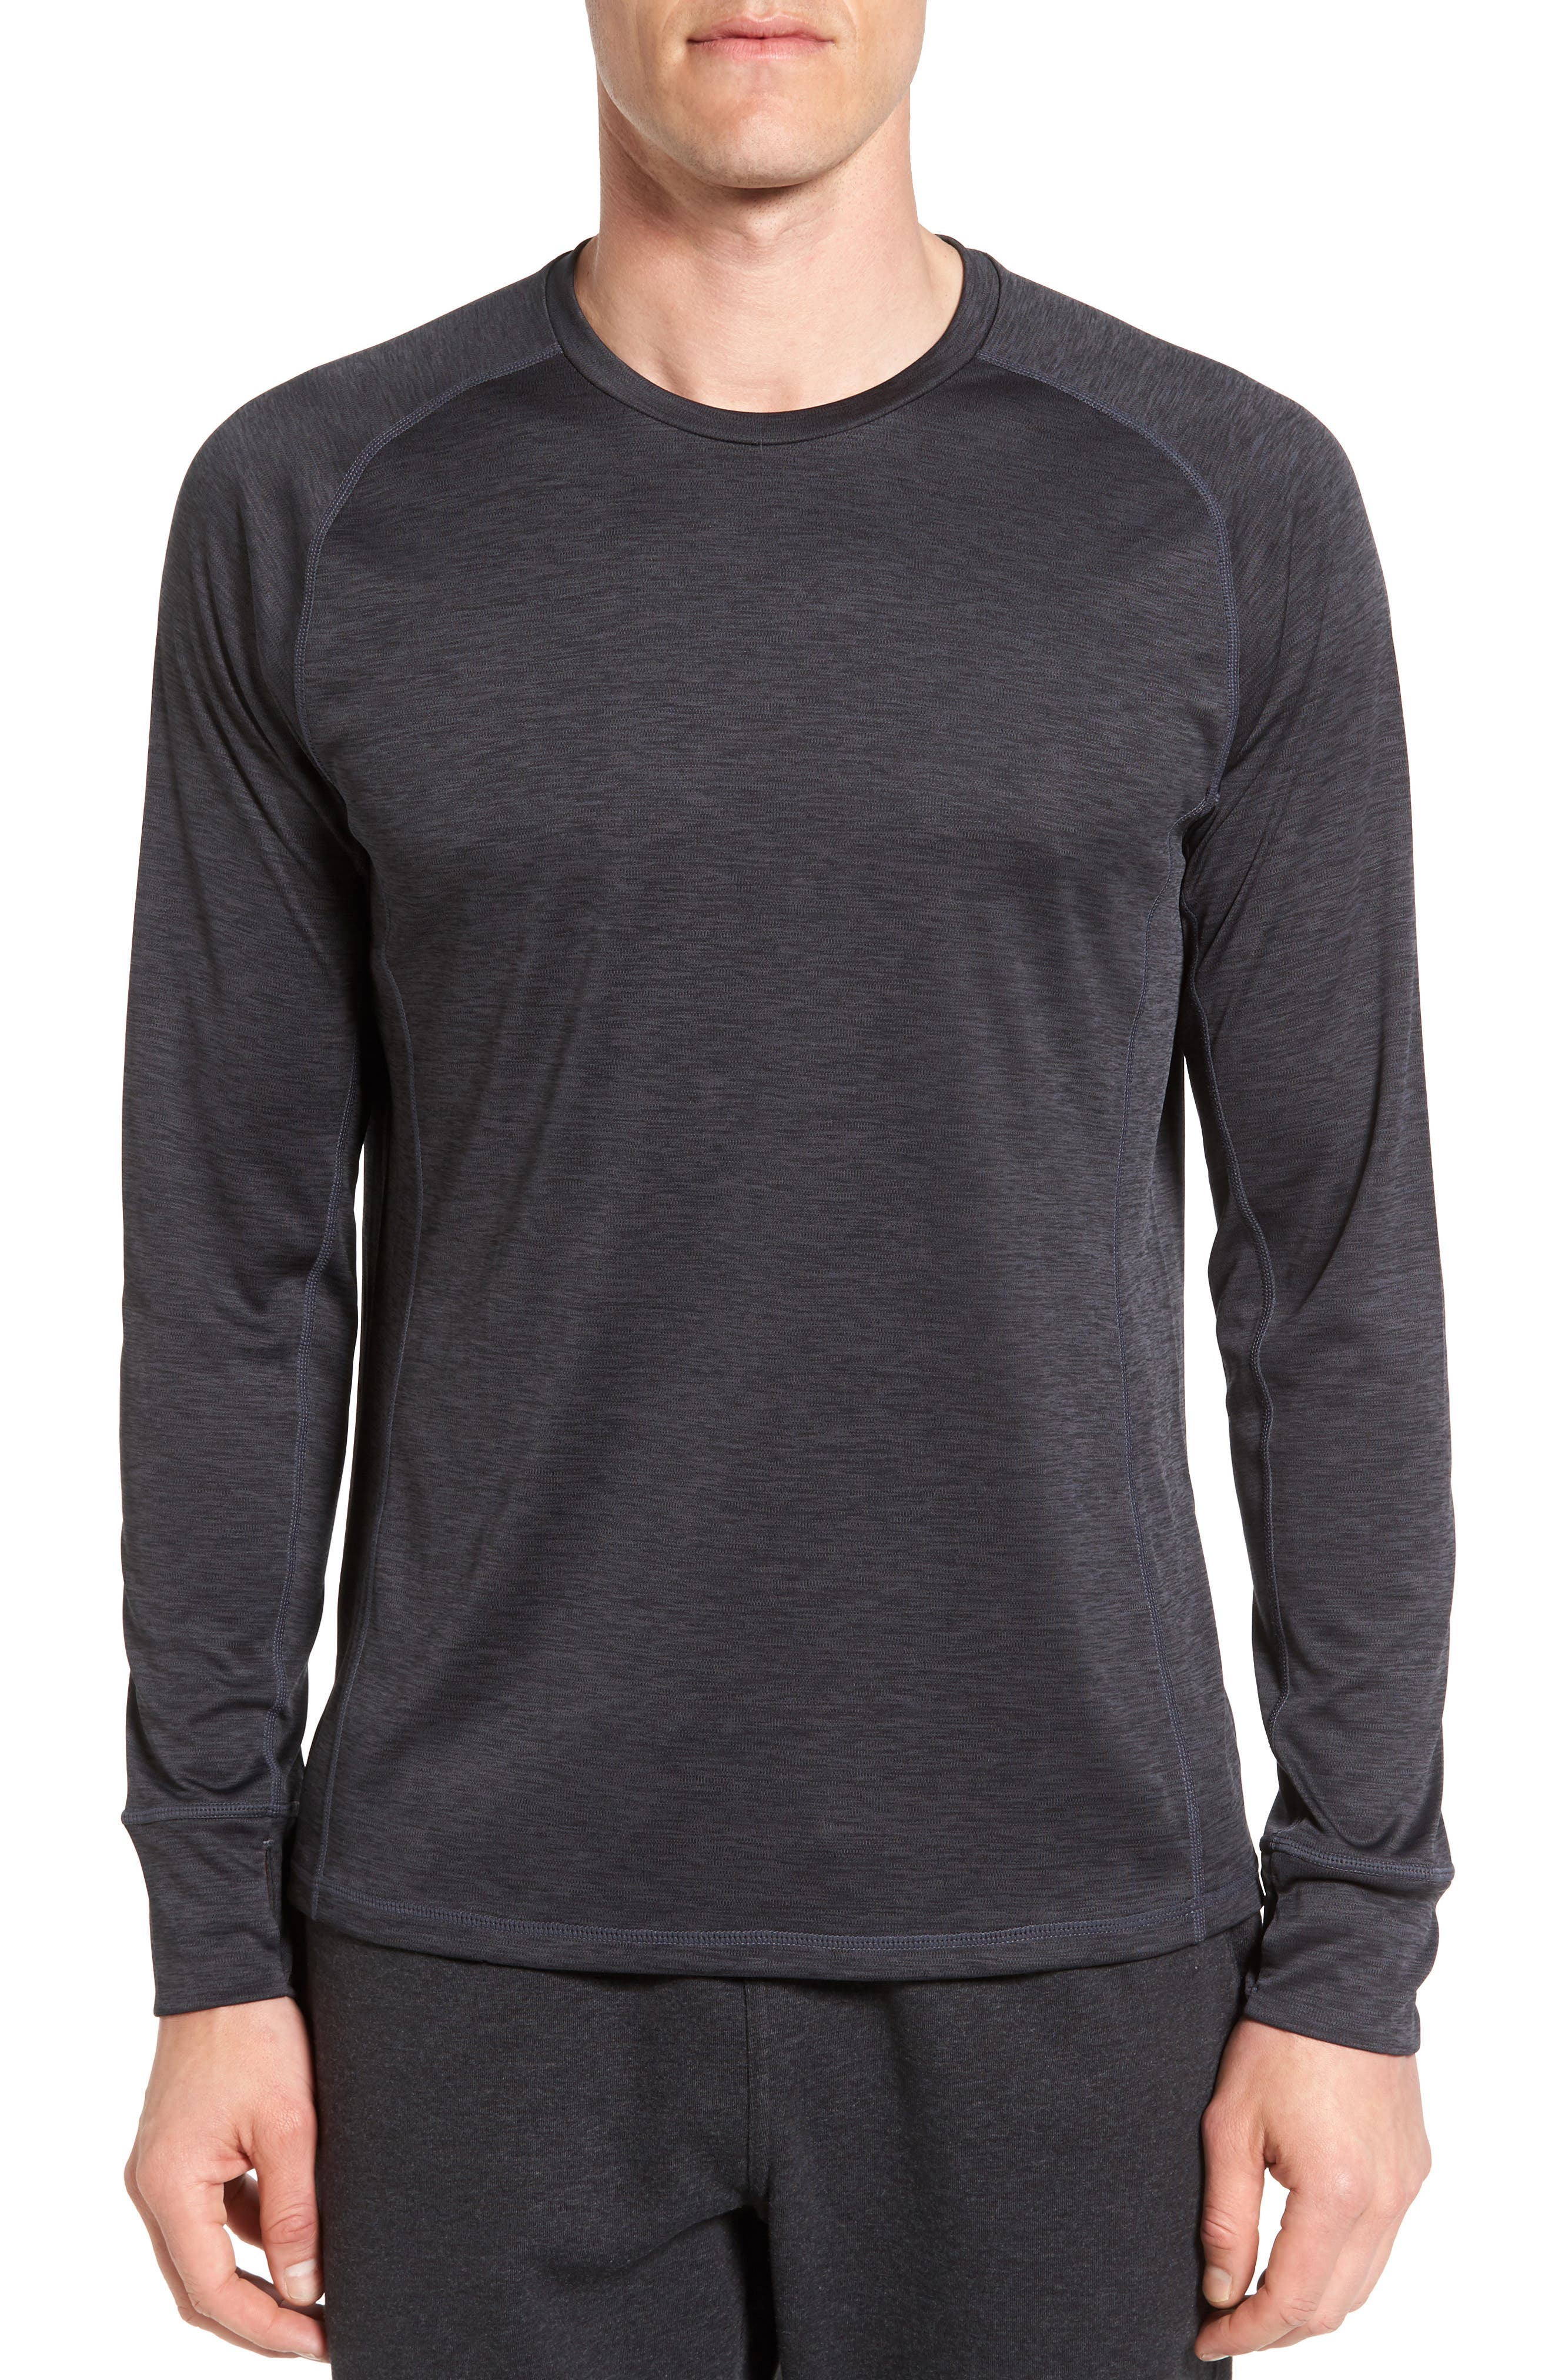 Triplite Long Sleeve T-Shirt,                         Main,                         color, 001